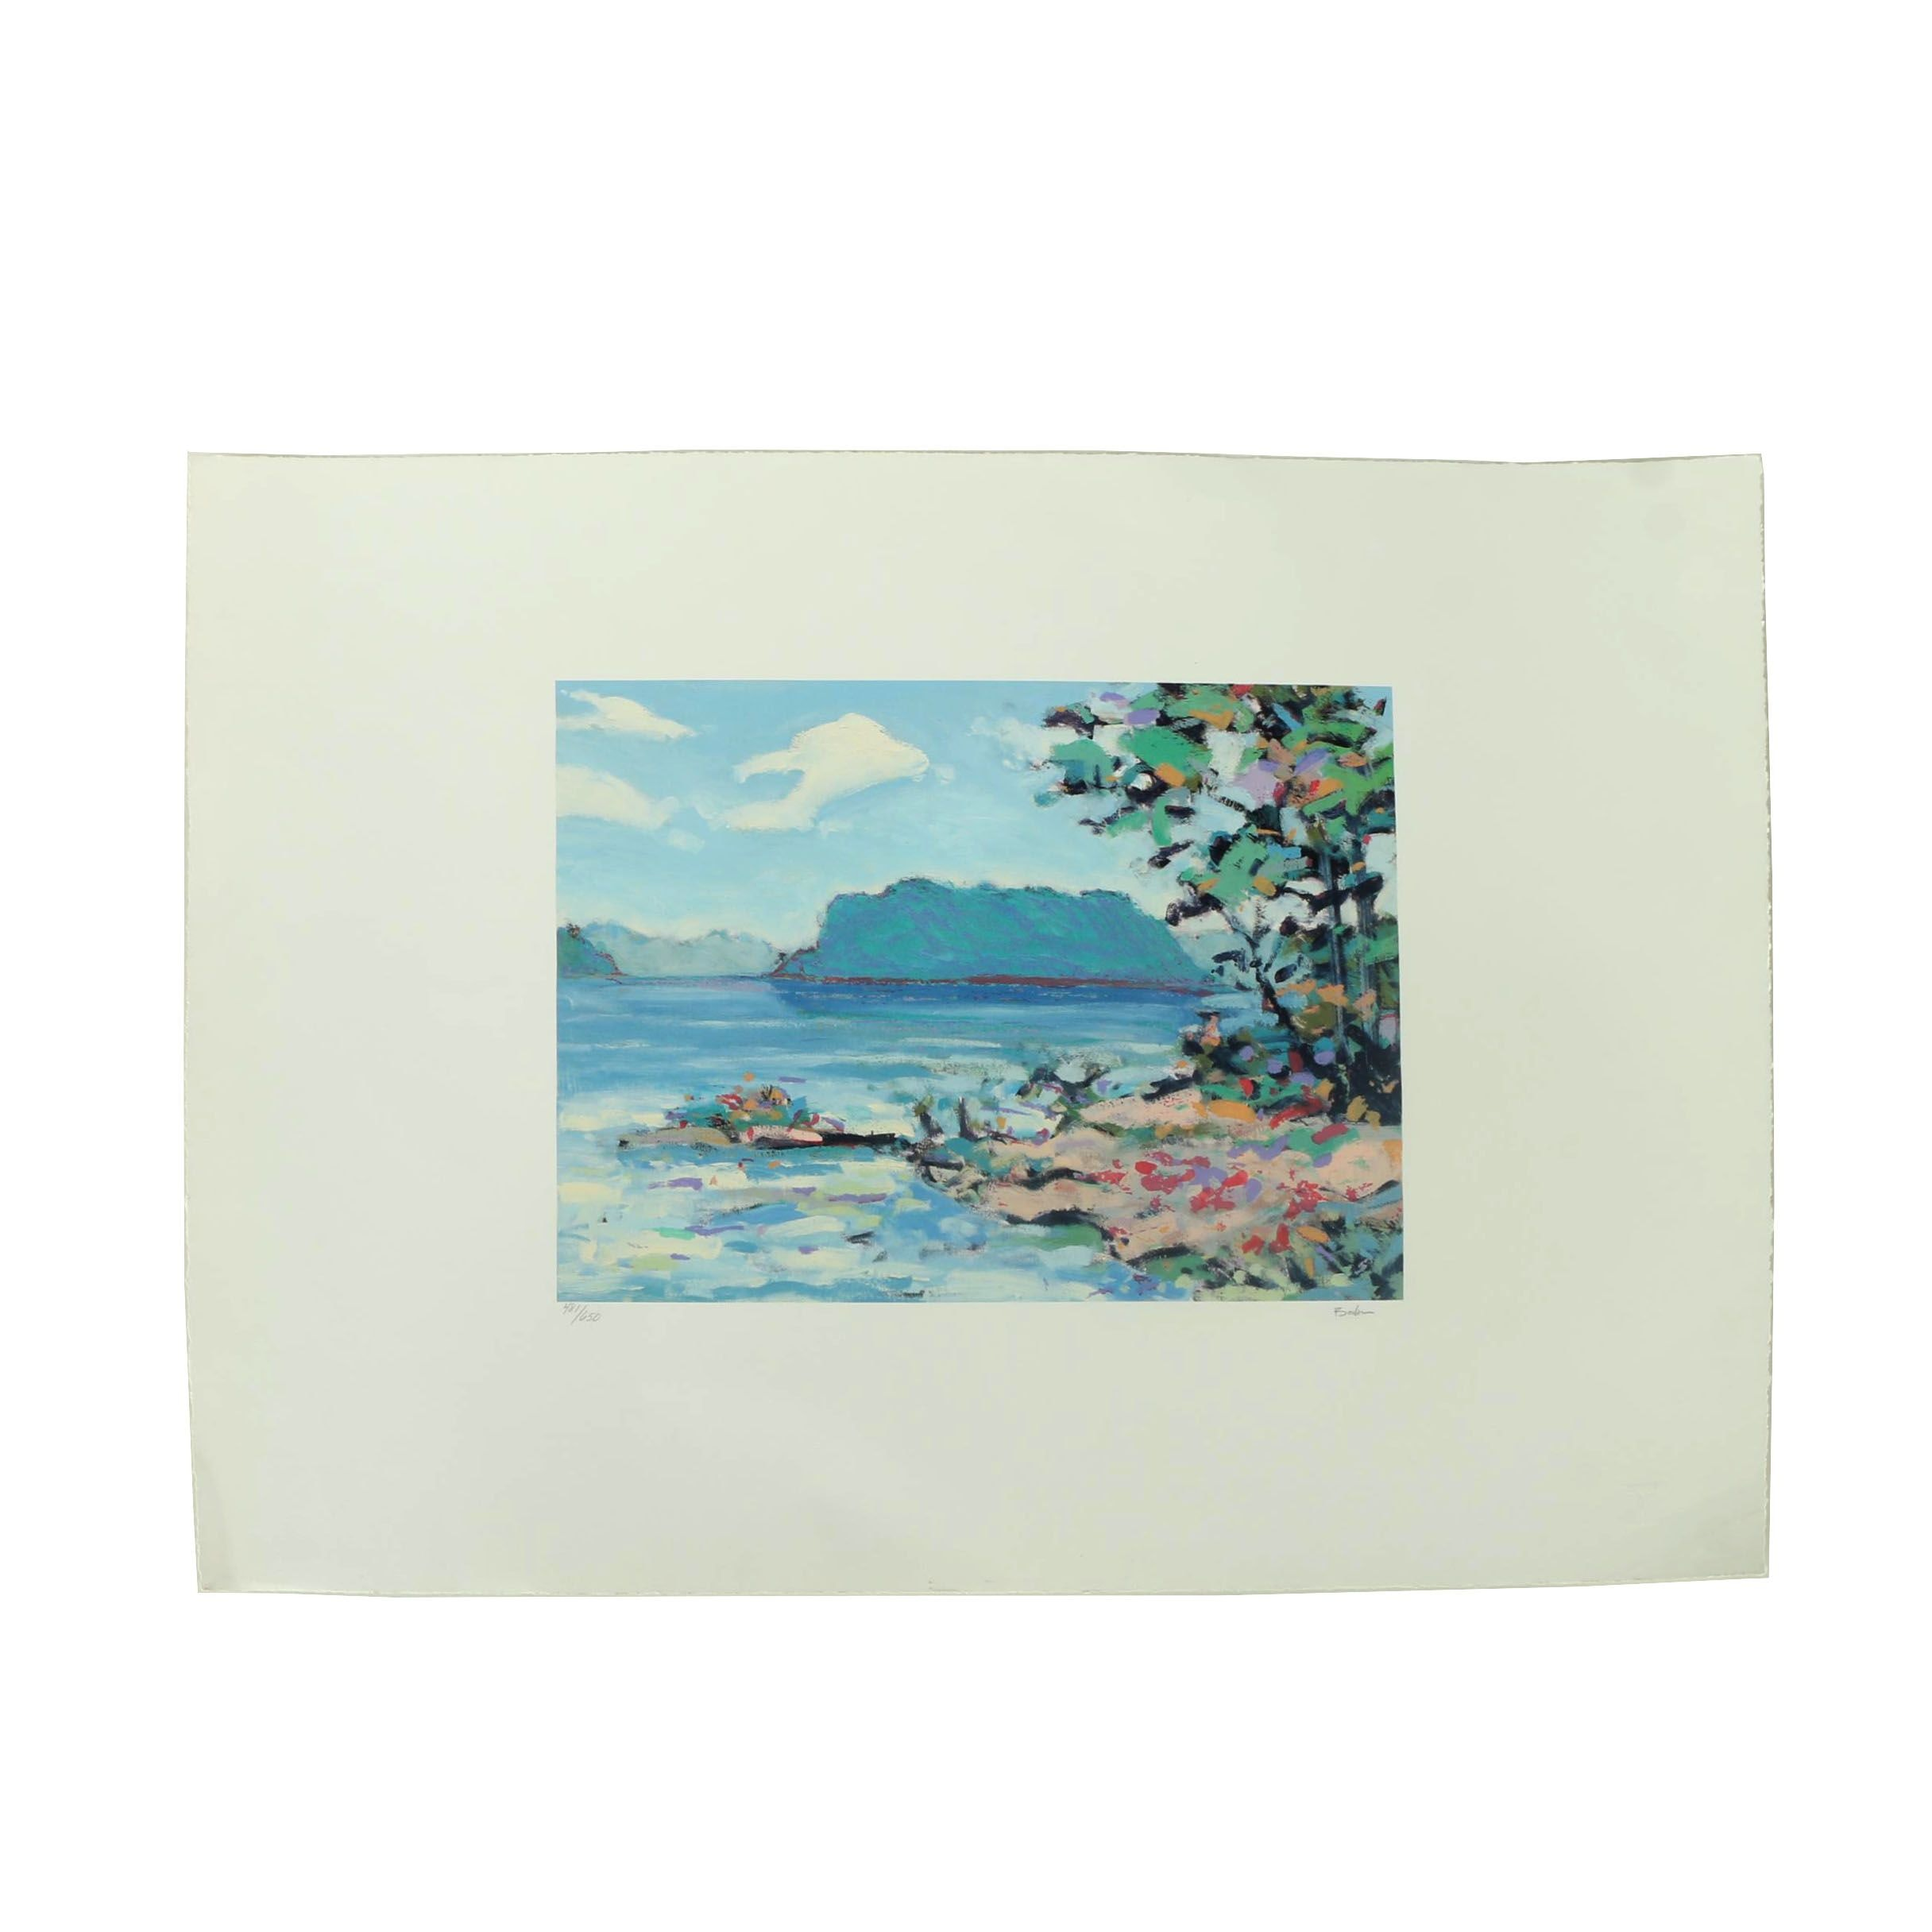 Balson Limited Edition Offset Lithograph on Paper of a Seaside